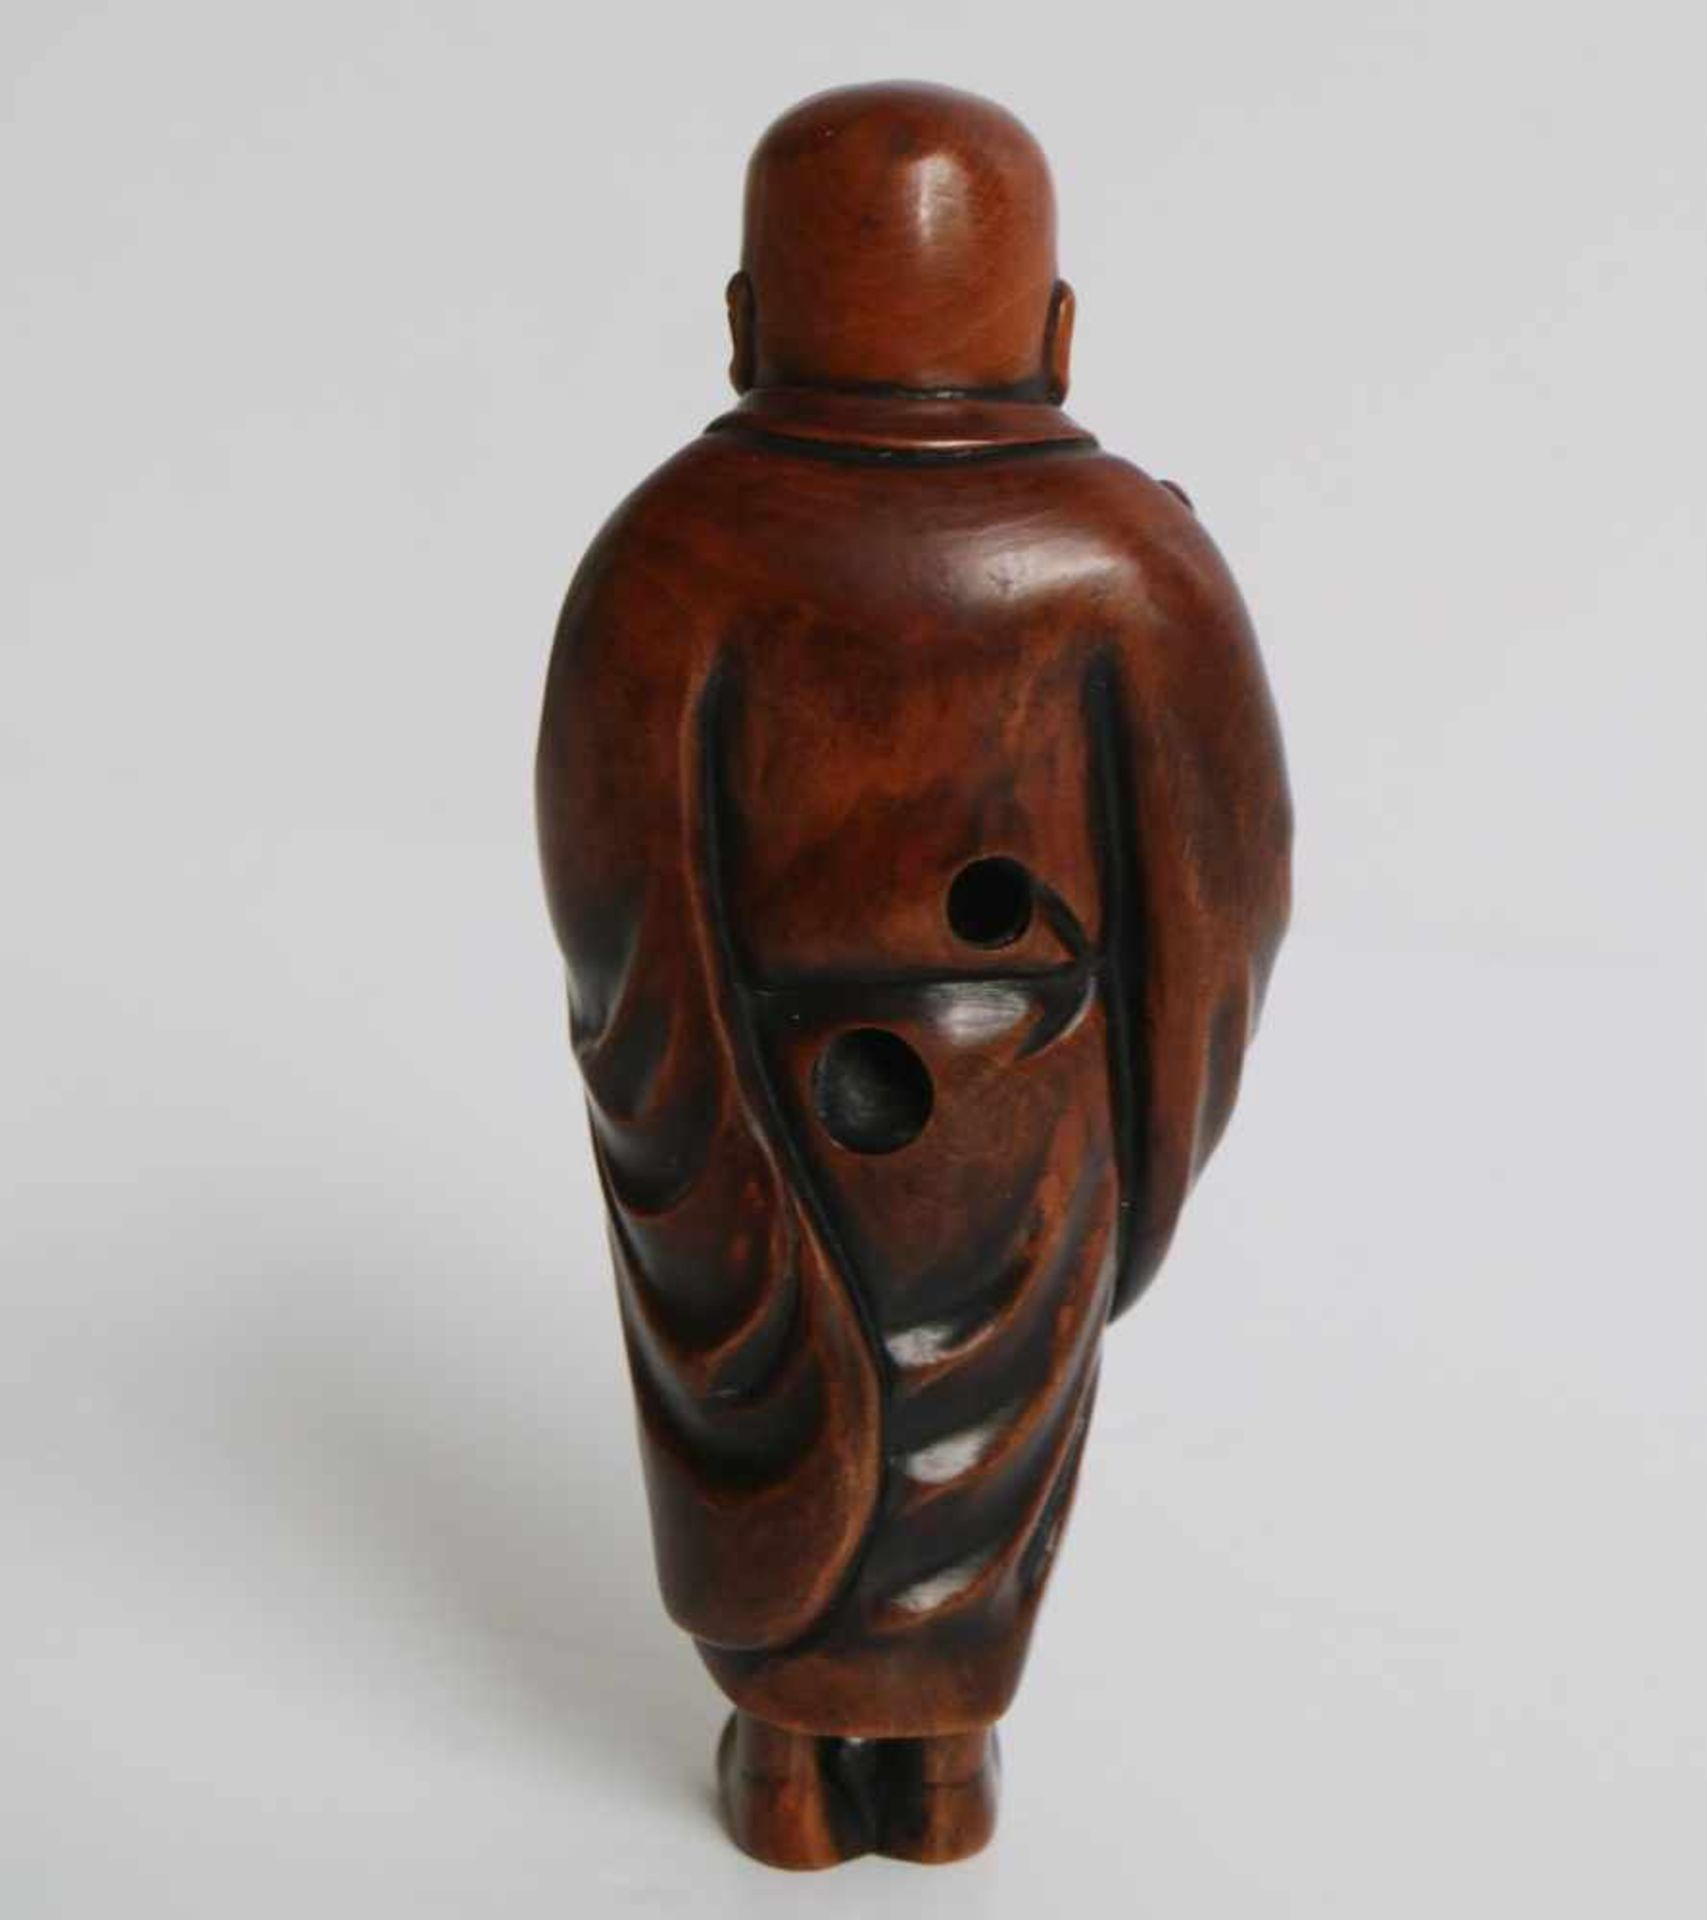 Los 477 - Boxwood netsuke of a sholar Japan 20th century H 10 cm signed private collection